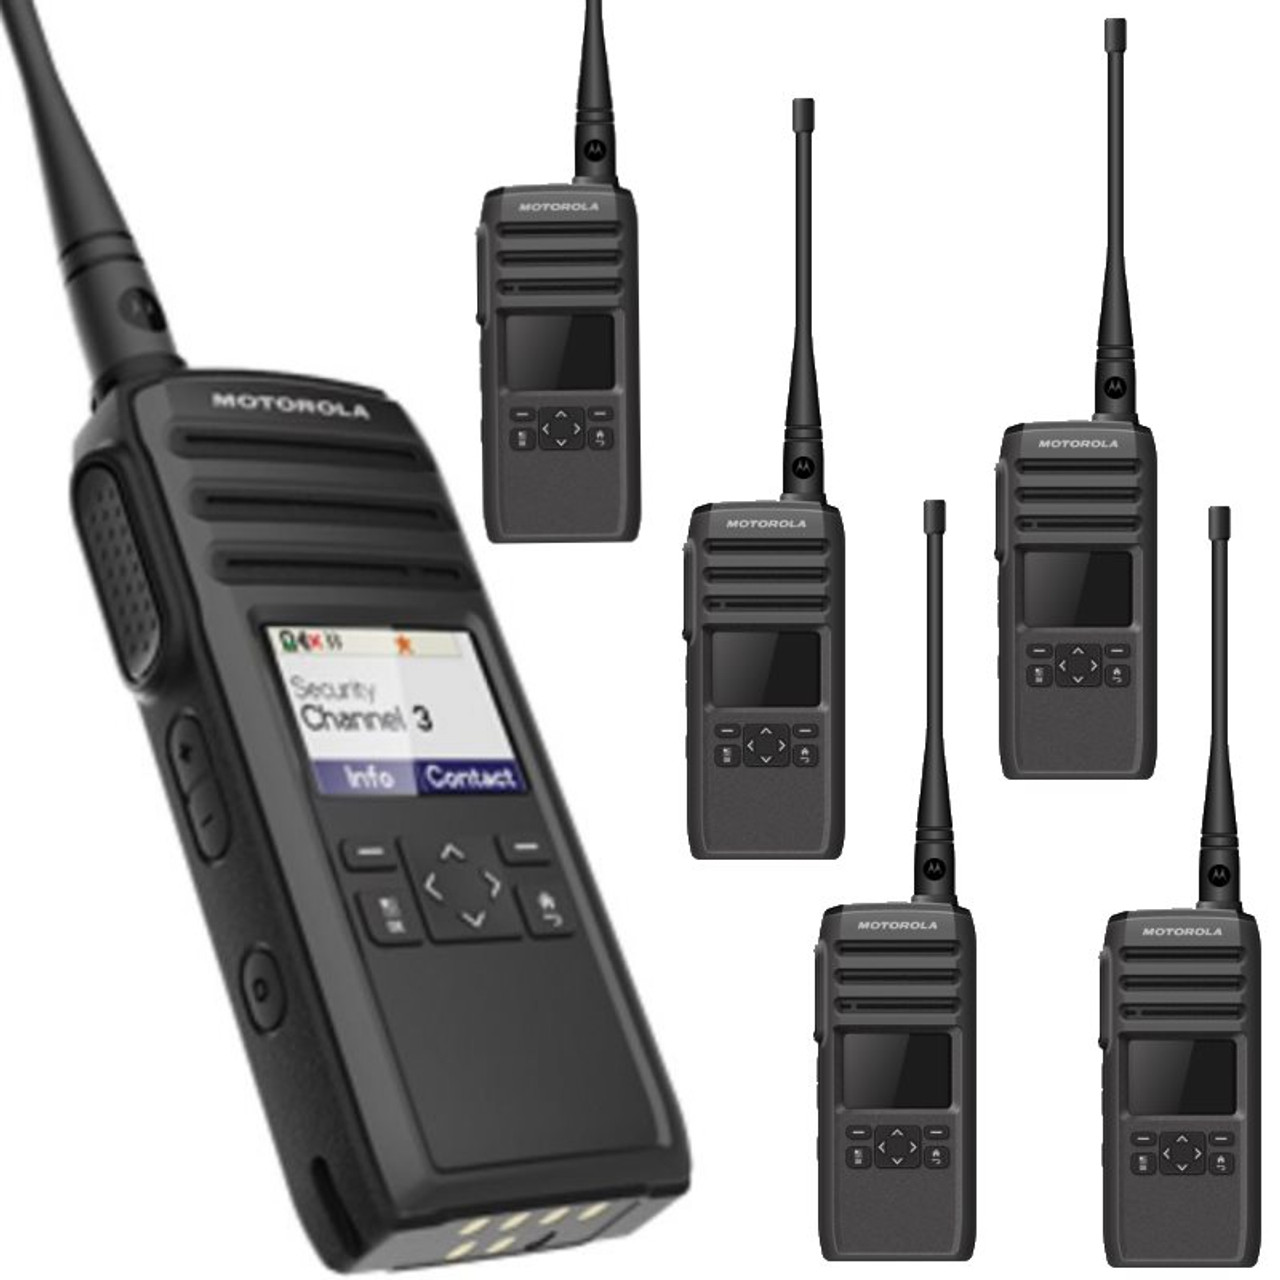 Get Your Six Pack Of LICENSE FREE Motorola DTR700 Digital Two Way Radios For Business With Vibra Call Backwards Compatible The DTR410